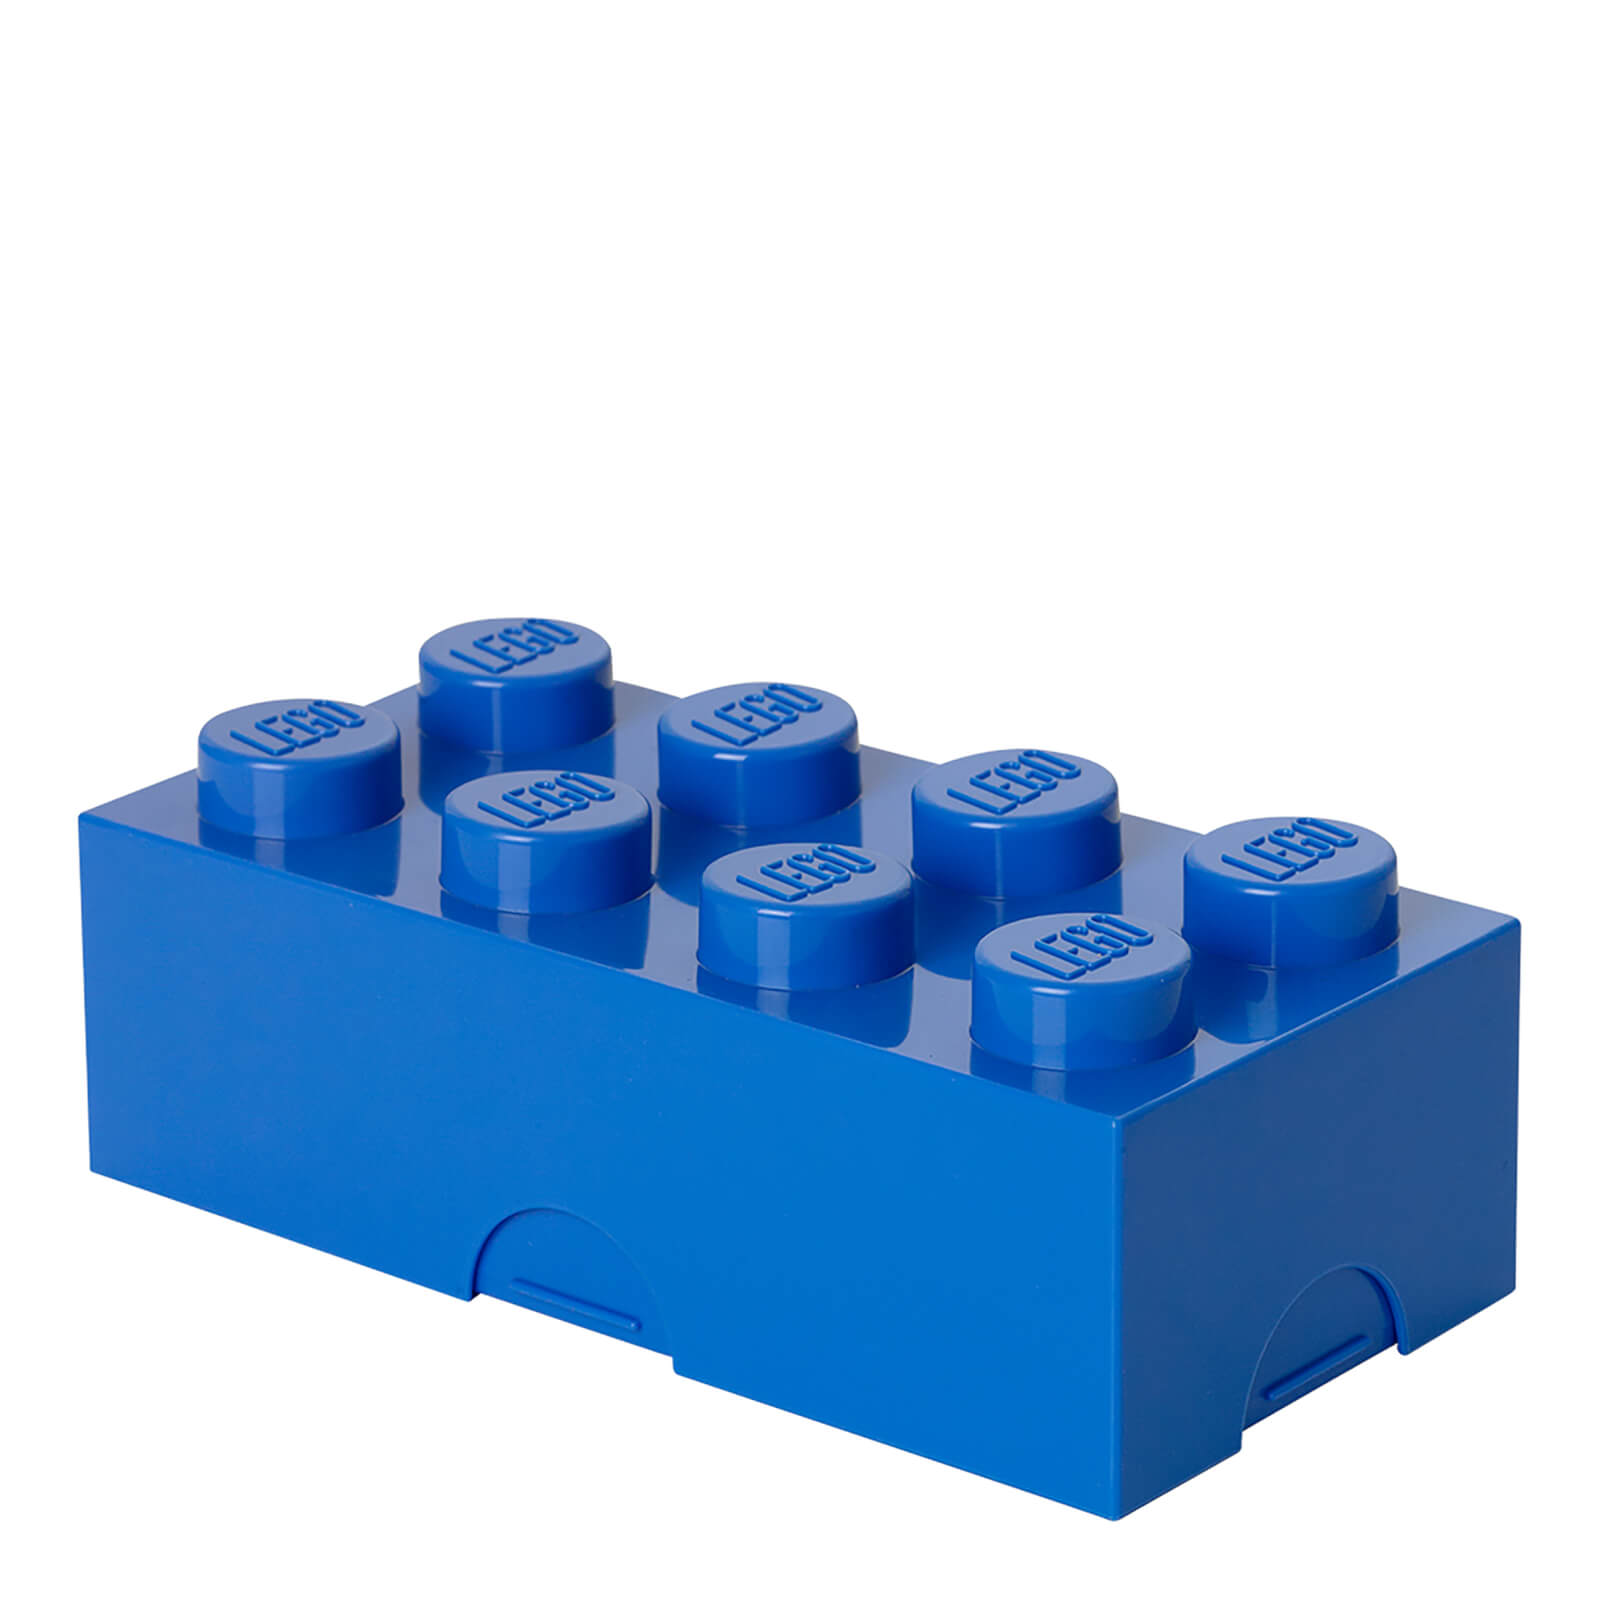 Image of LEGO Lunch Box - Bright Blue